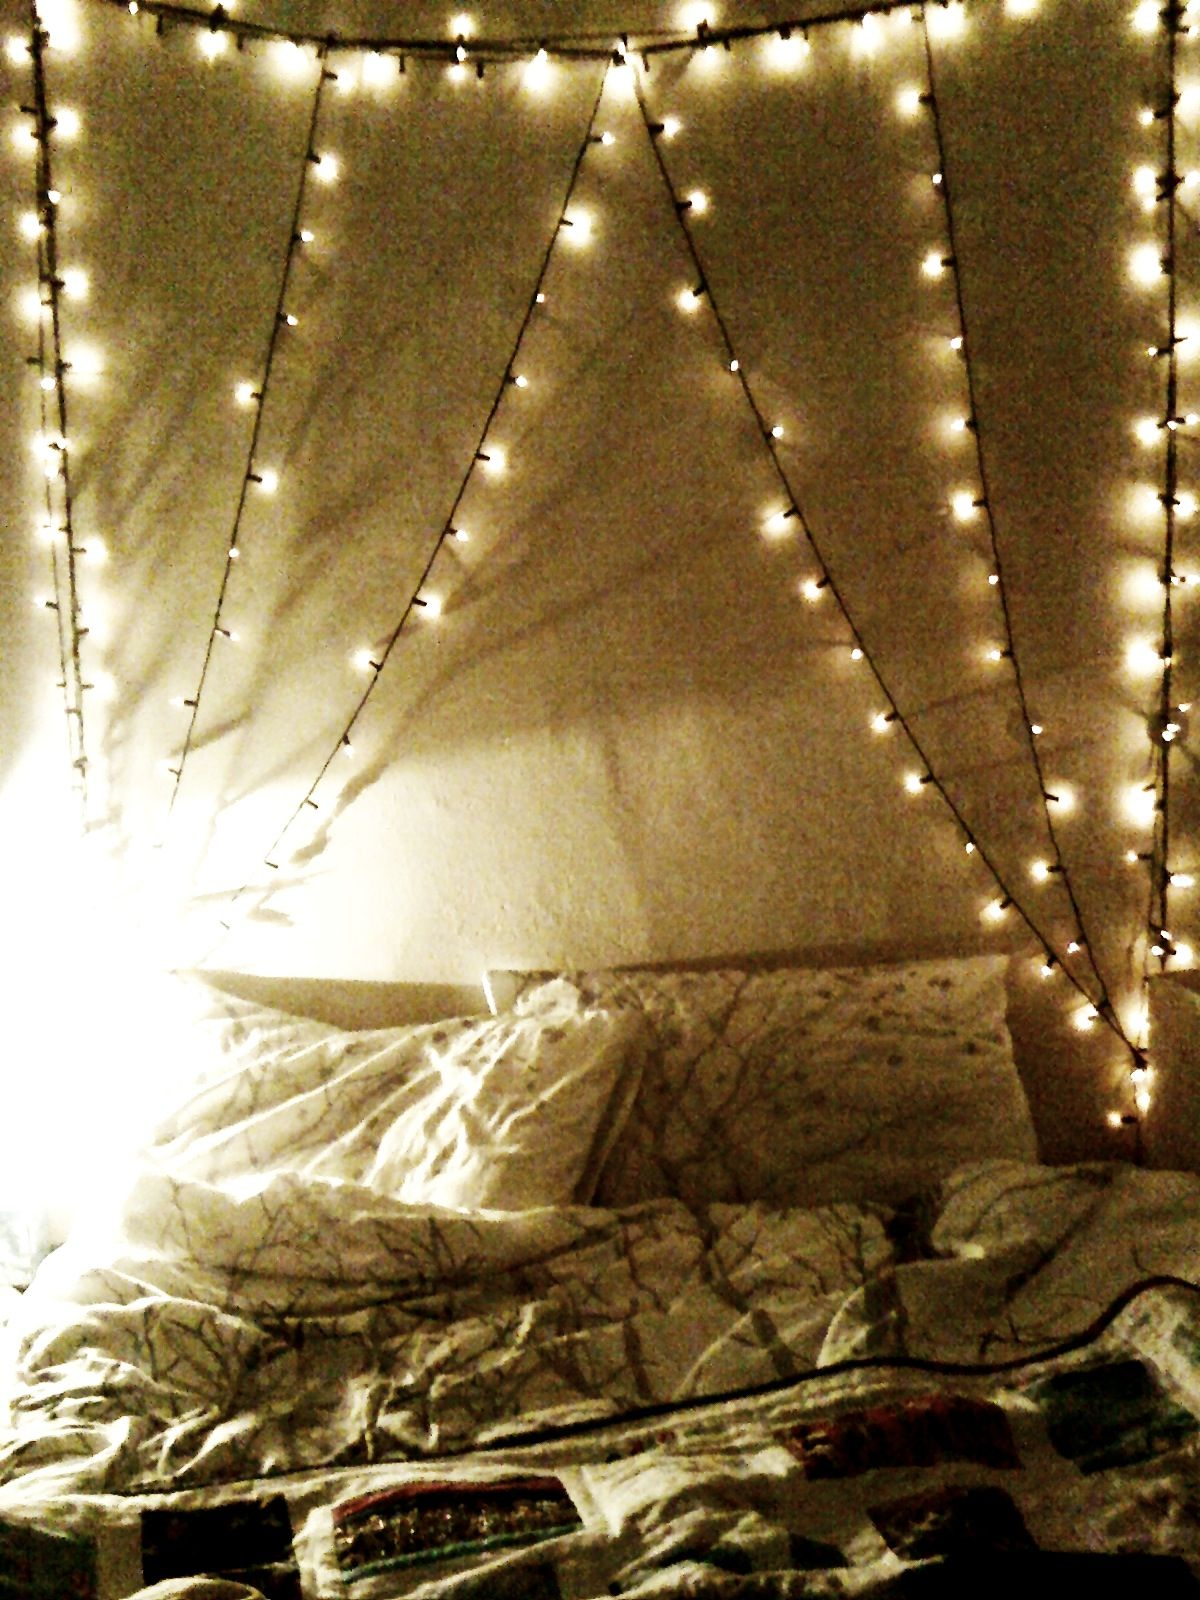 Bedroom fairy lights tumblr - 84 Best Images About Tumblr Bedrooms On Pinterest Tumblr Room Wall Quotes And Search